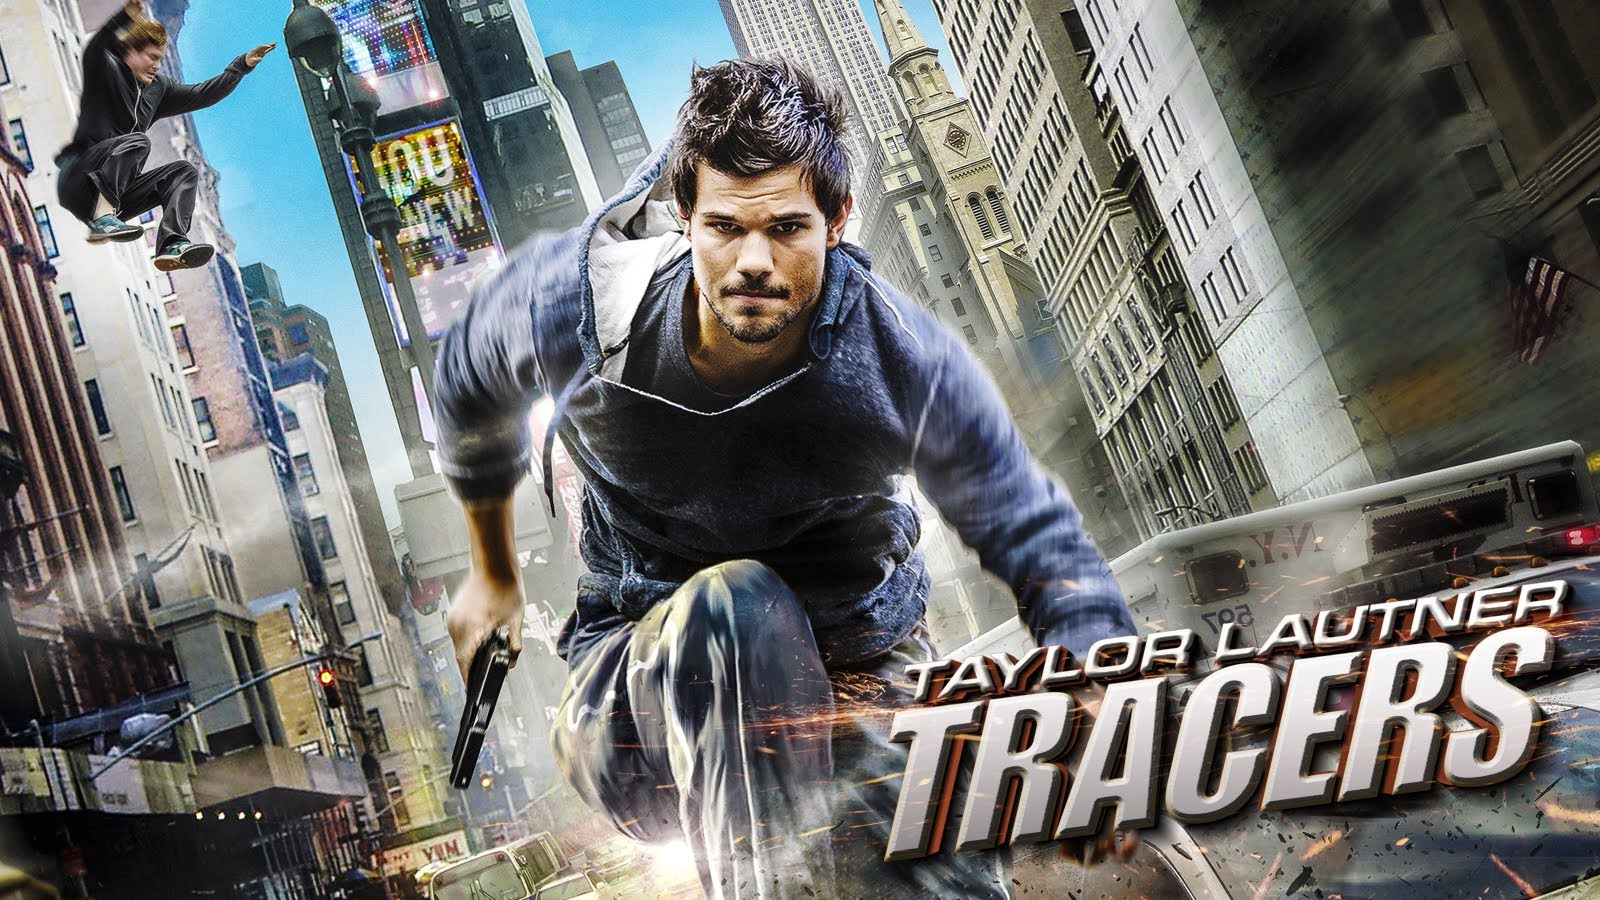 tracers movie dual audio download 720p